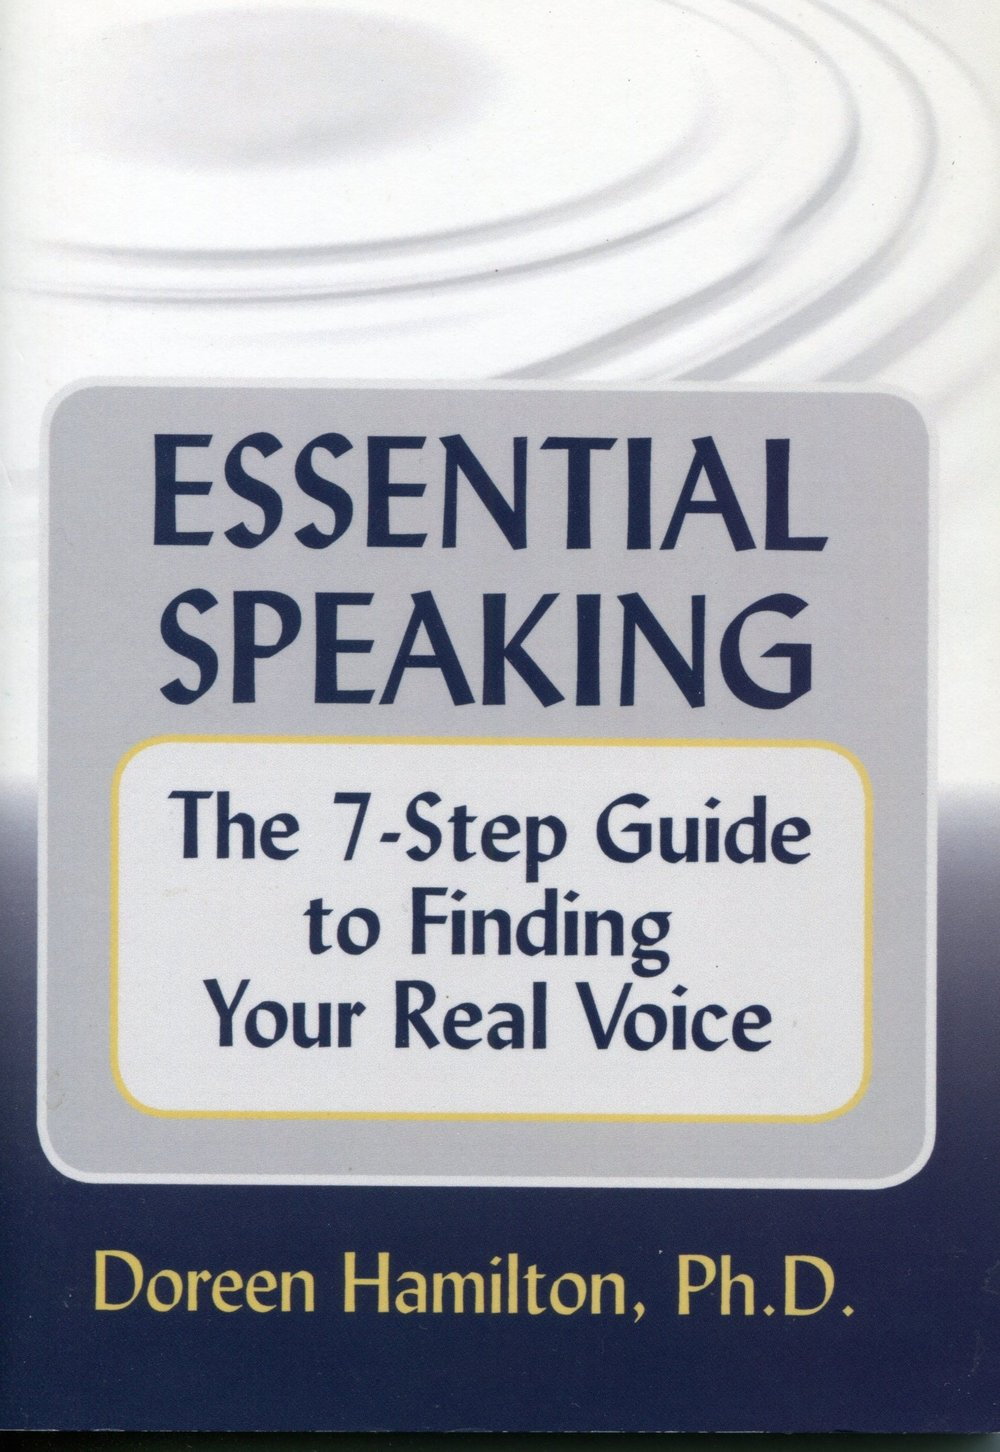 essential speaking, by doreen hamilton. developed by naomi rose